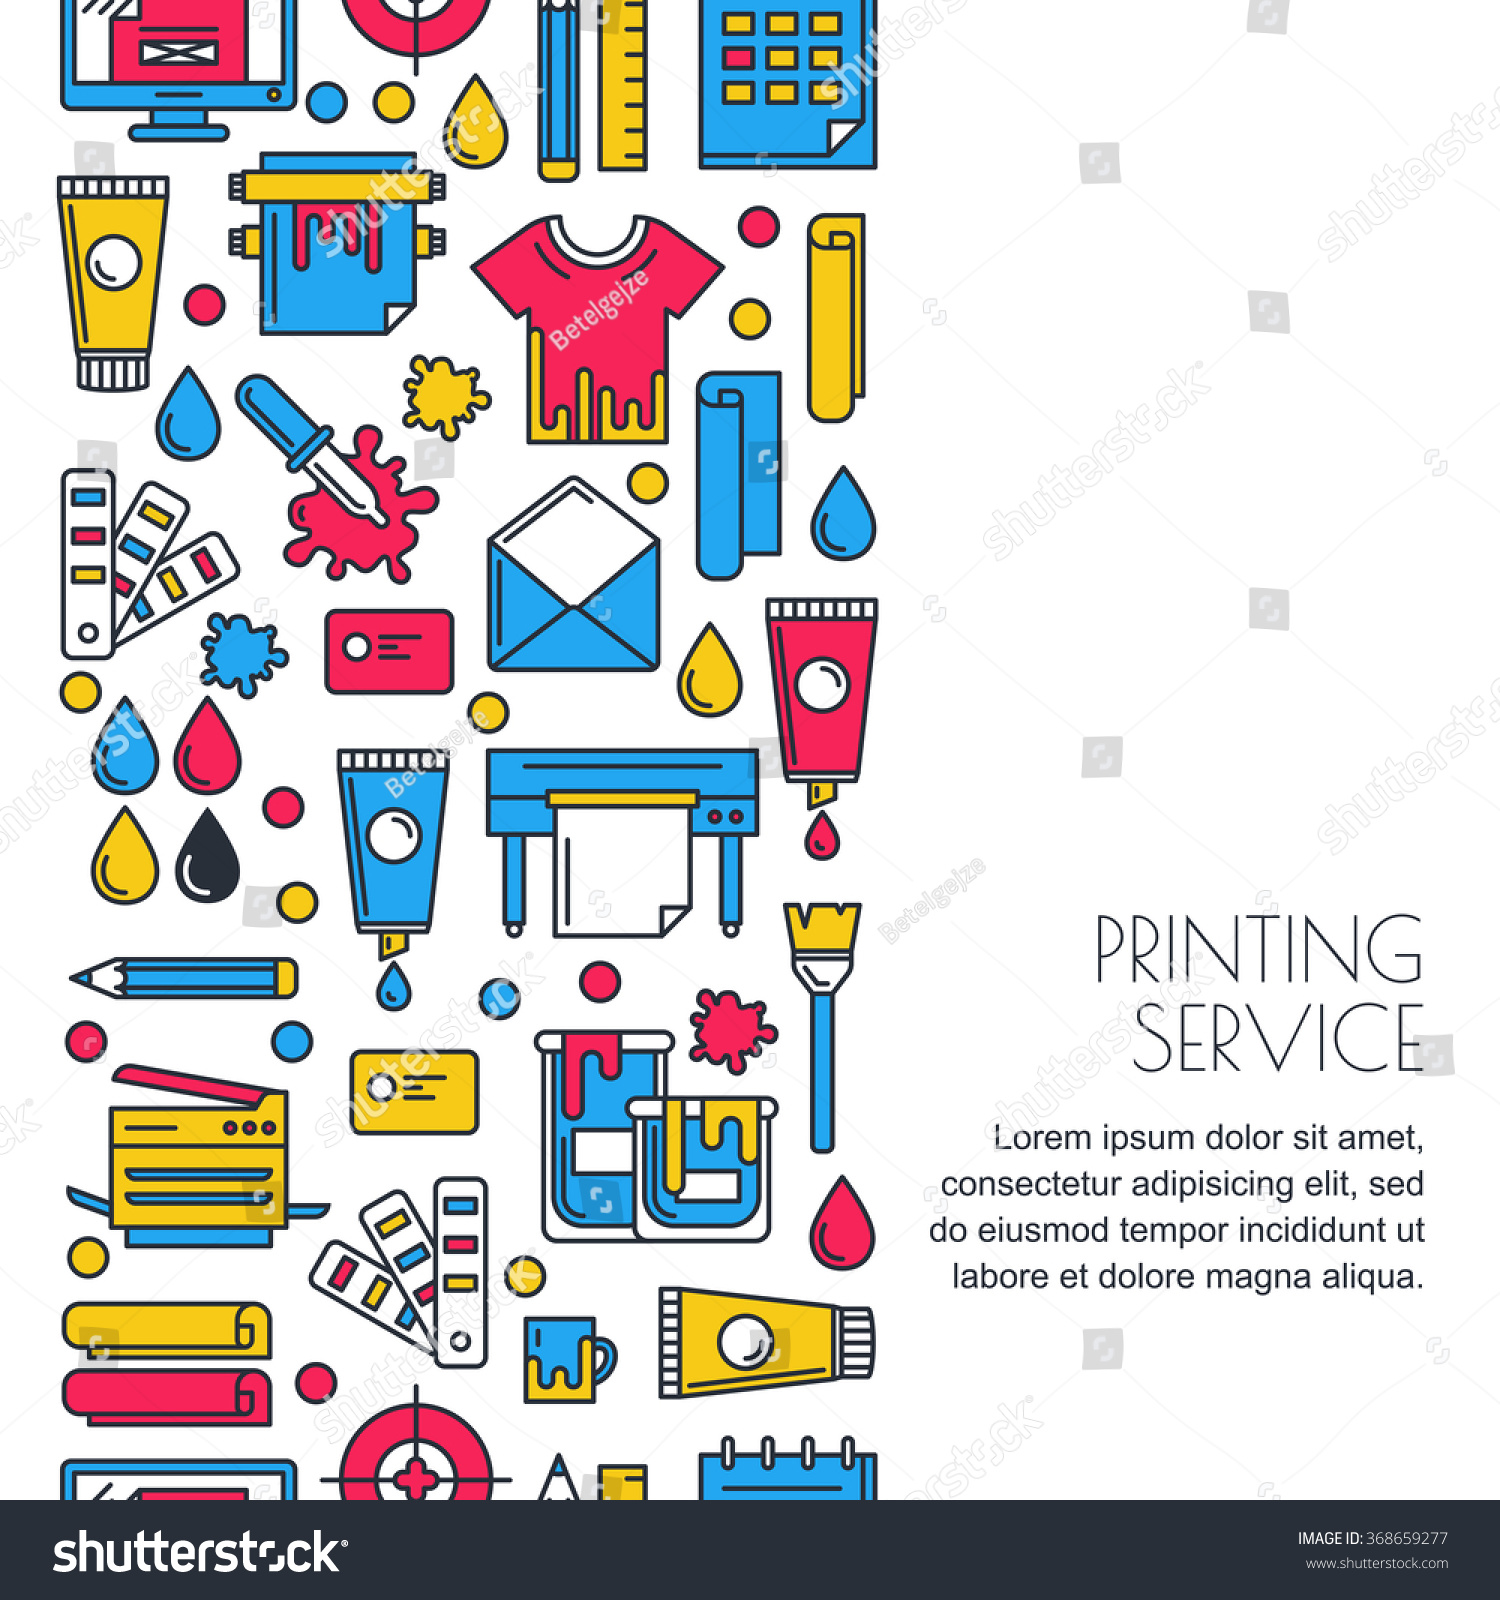 Background image vertical center - Vector Seamless Vertical Background With Flat Printing Icons In Cmyk Colors Printer Plotter